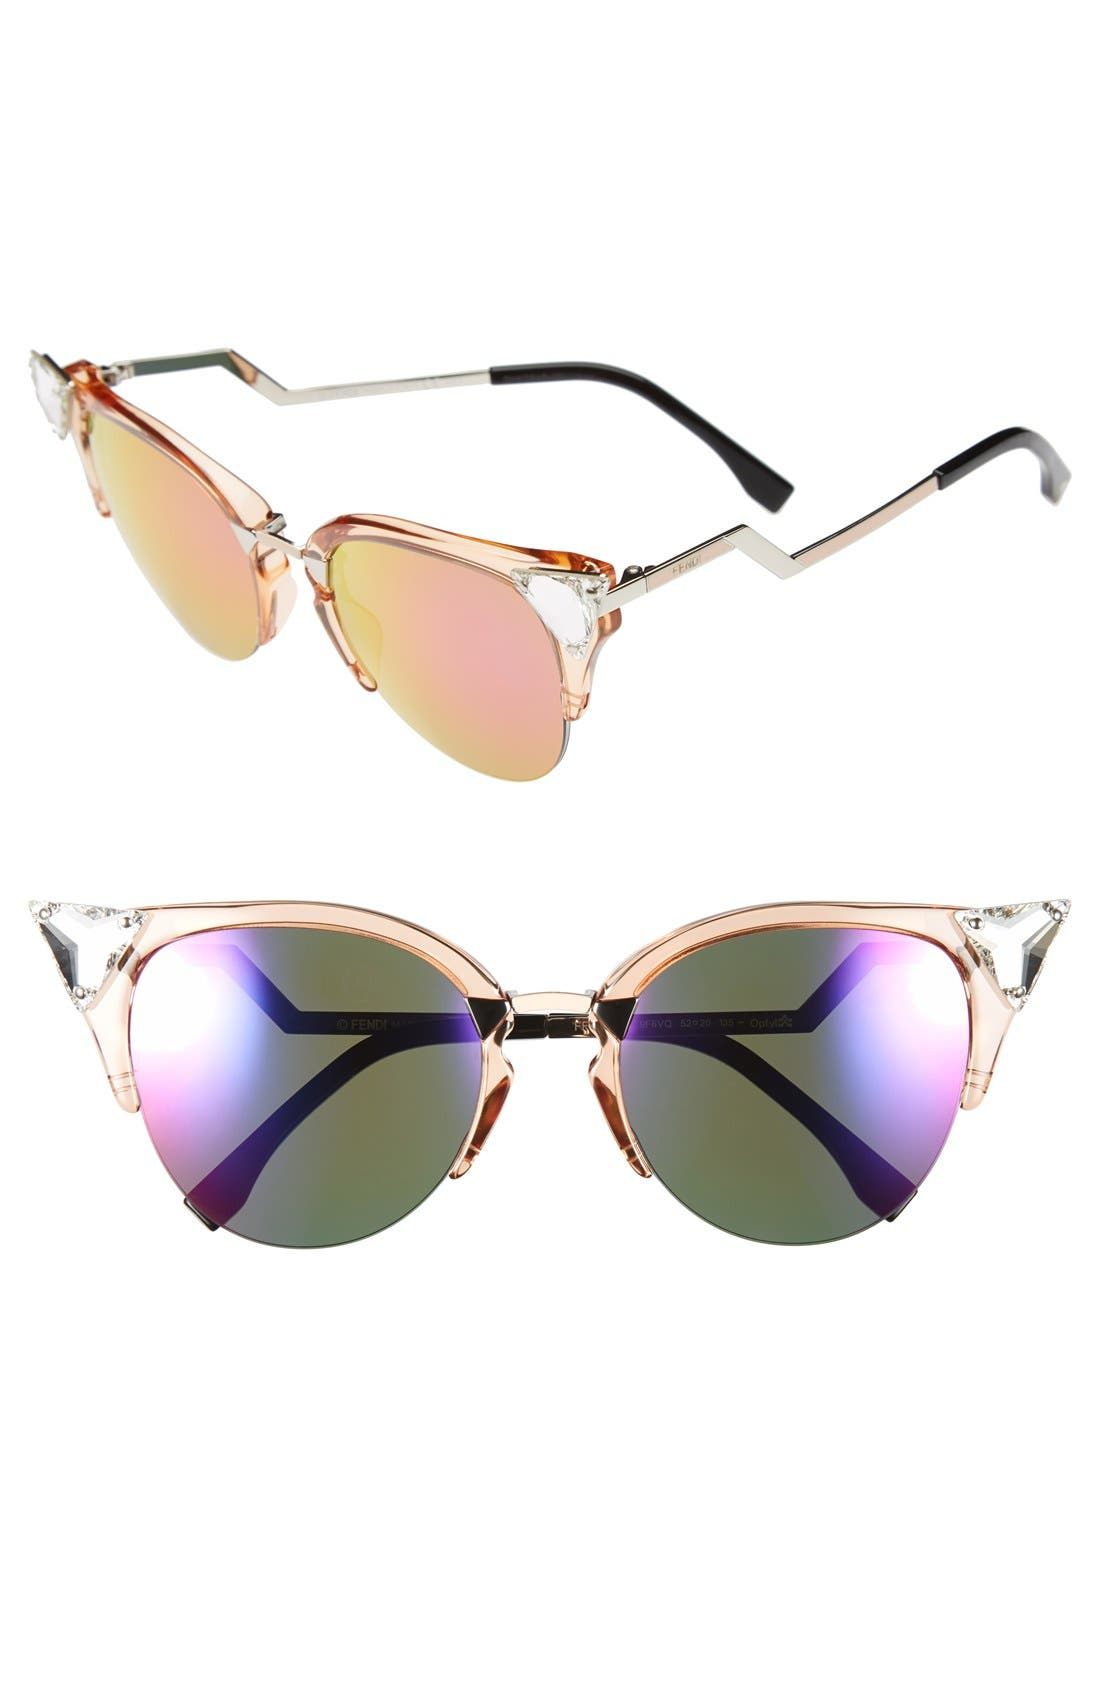 Alternate Image 1 Selected - Fendi Crystal 52mm Tipped Cat Eye Sunglasses